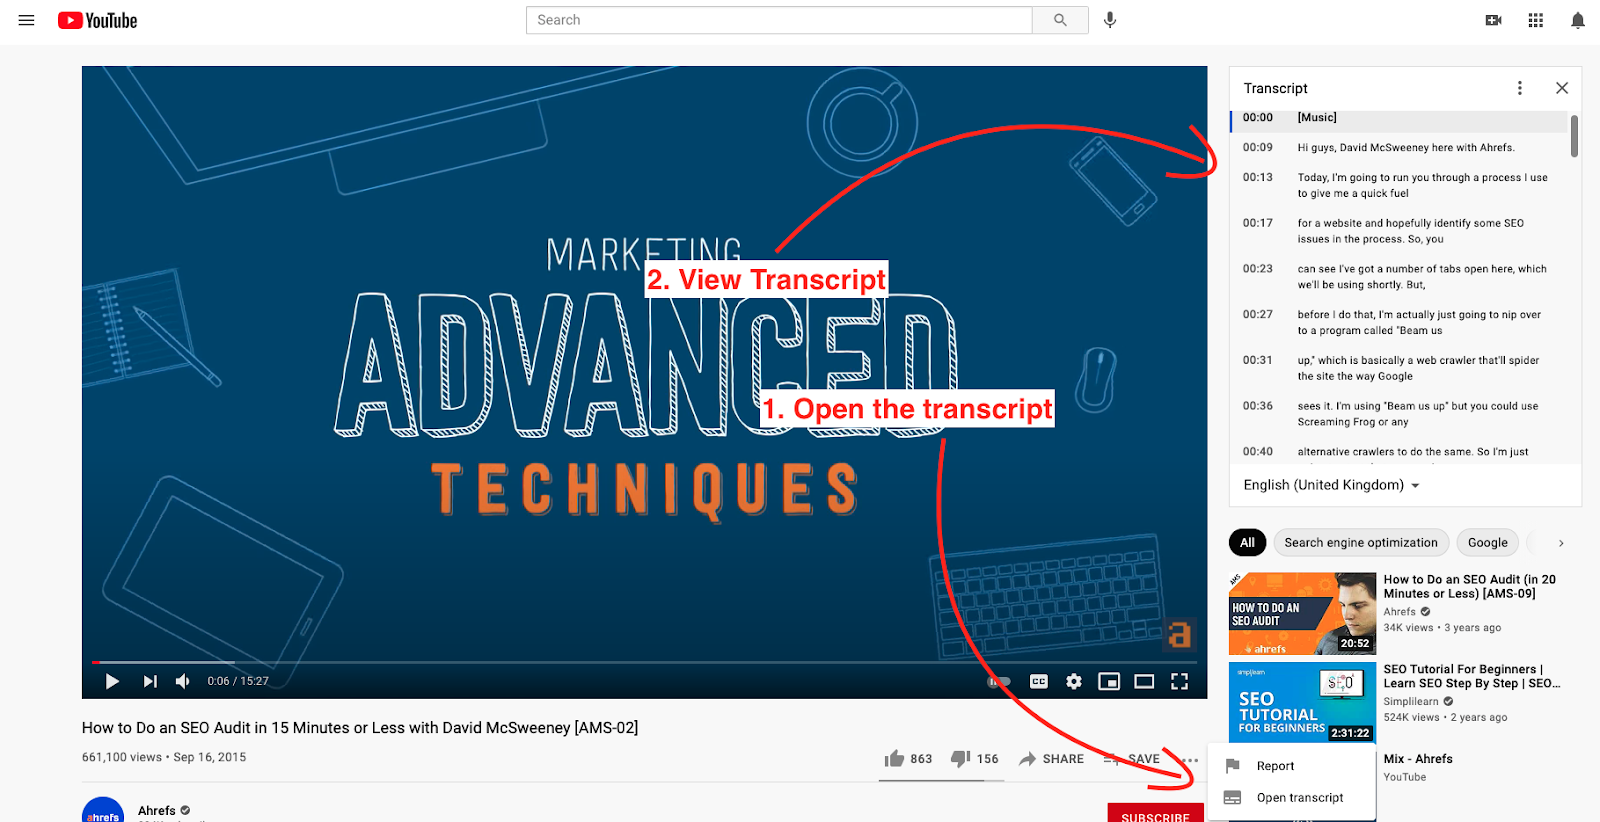 How to find a video transcript on YouTube